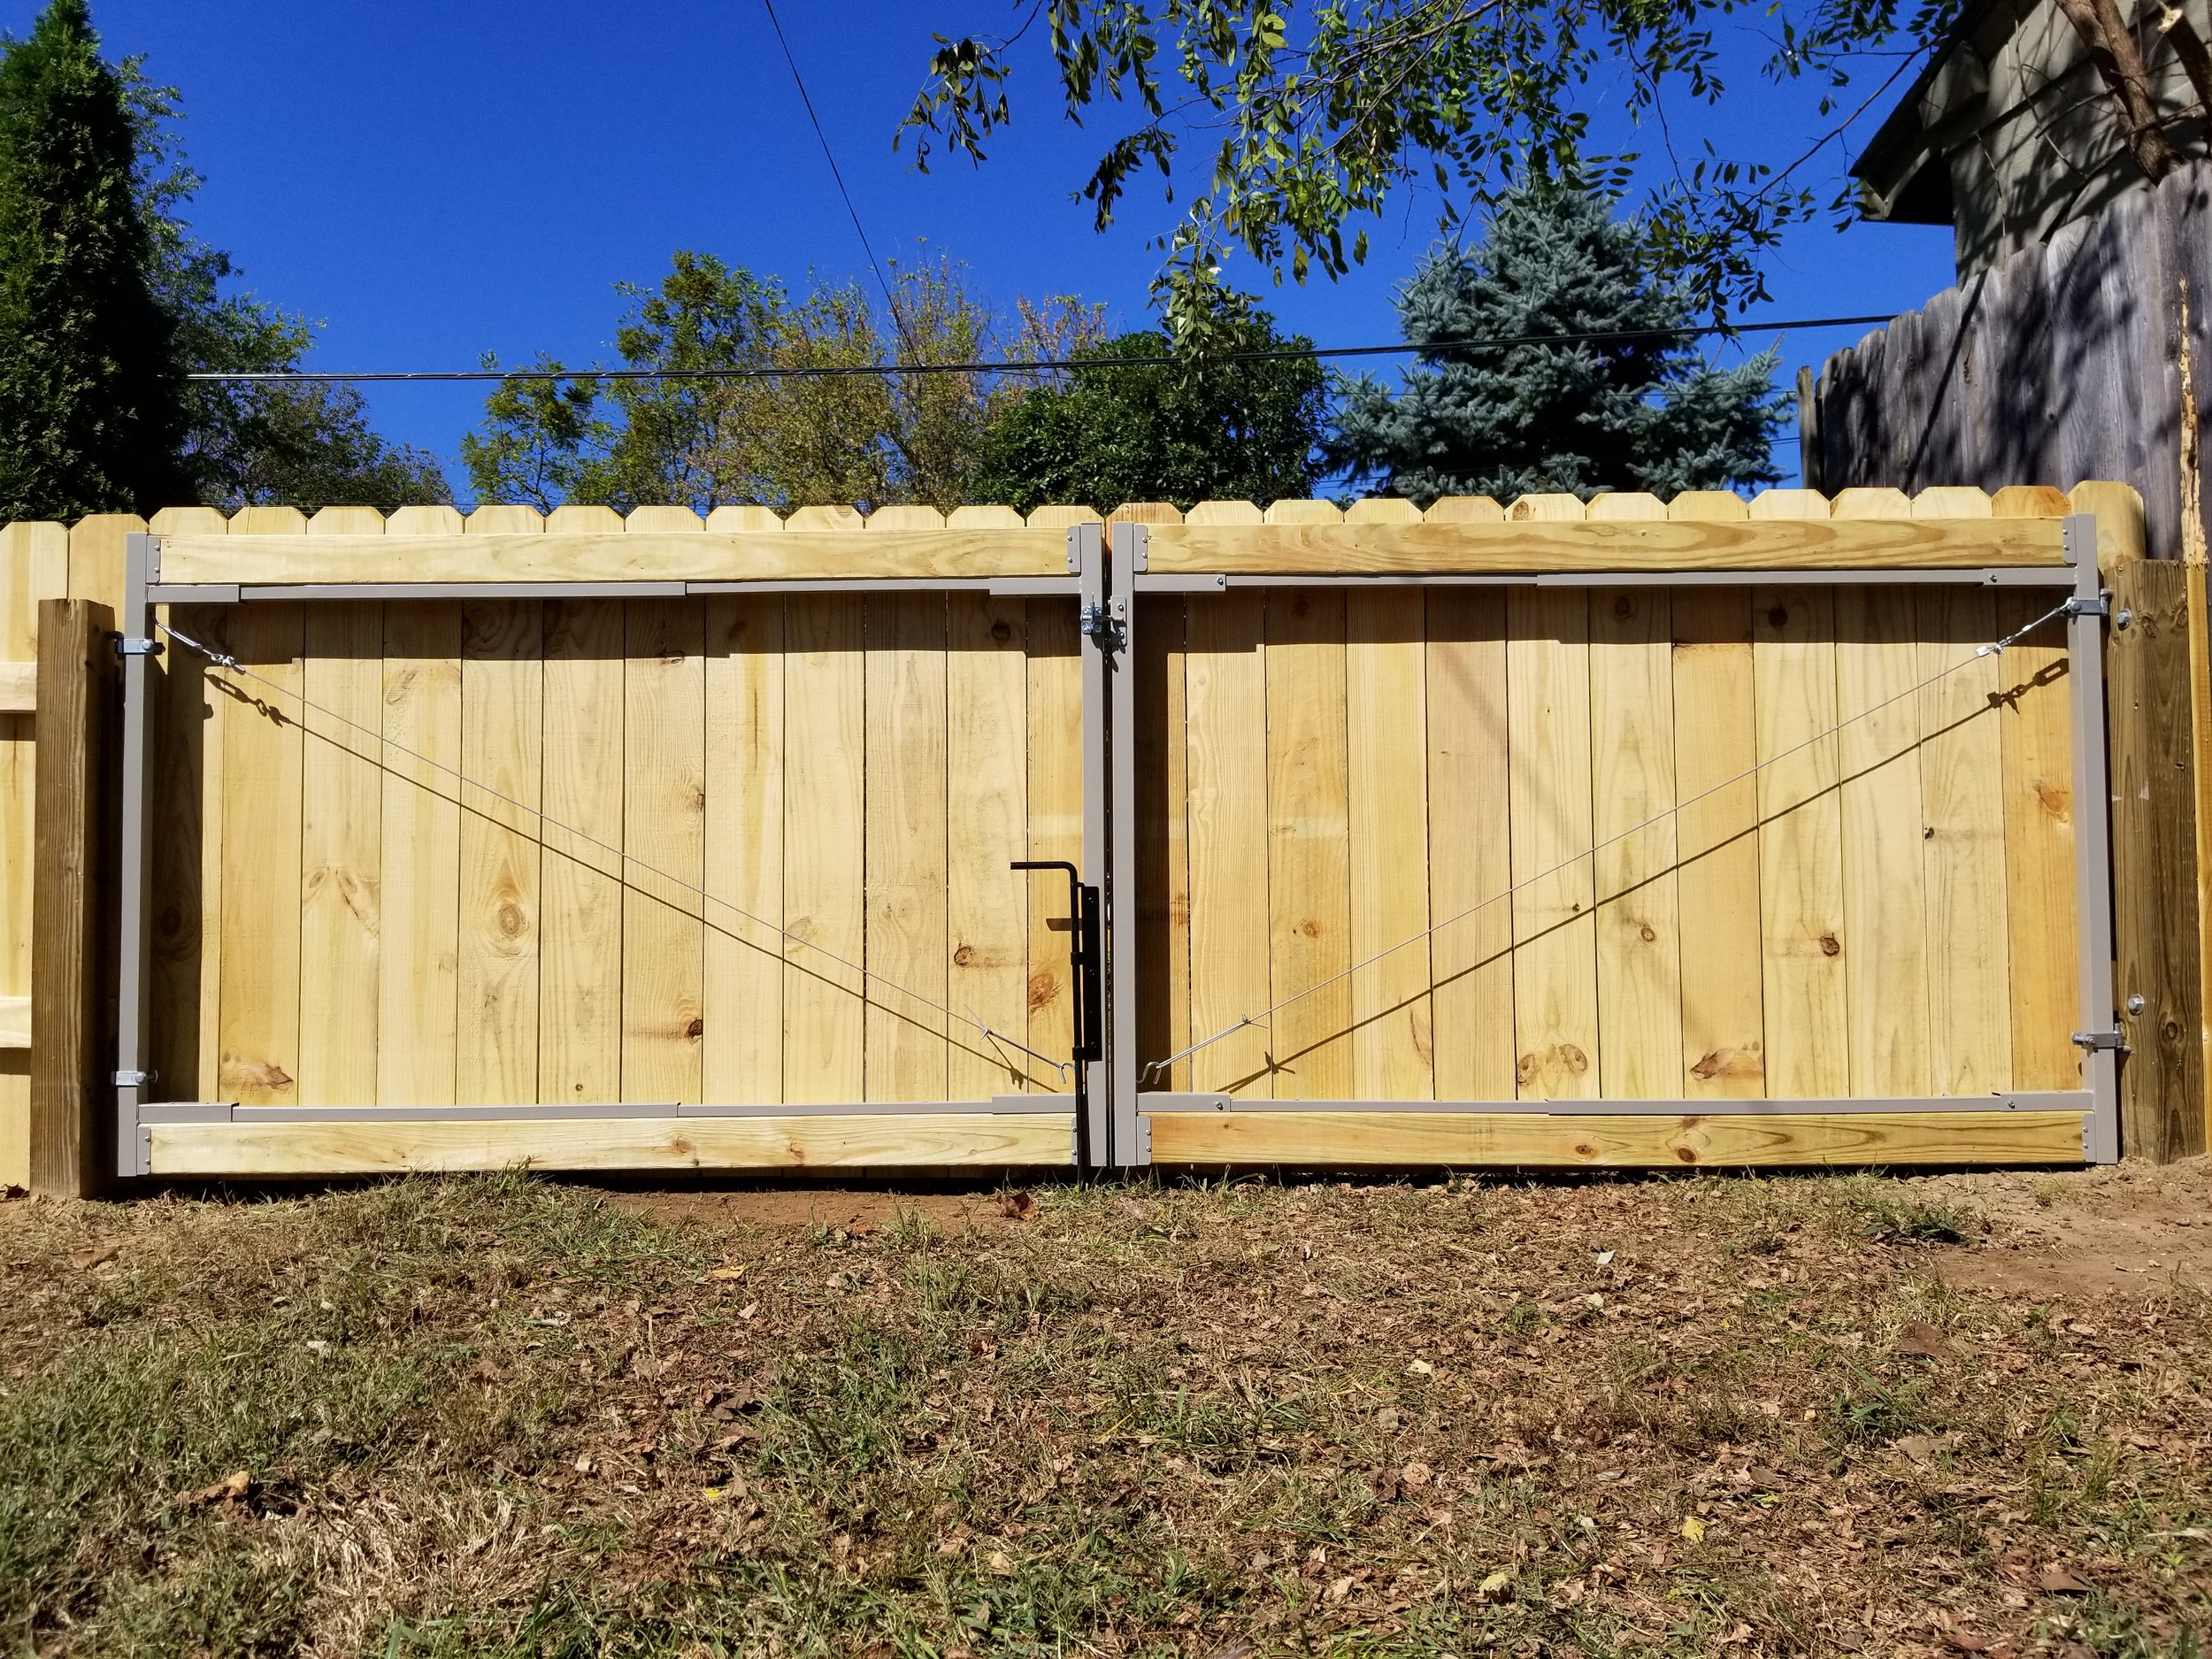 New Wood Fence Gate (Johnson City, Tn)